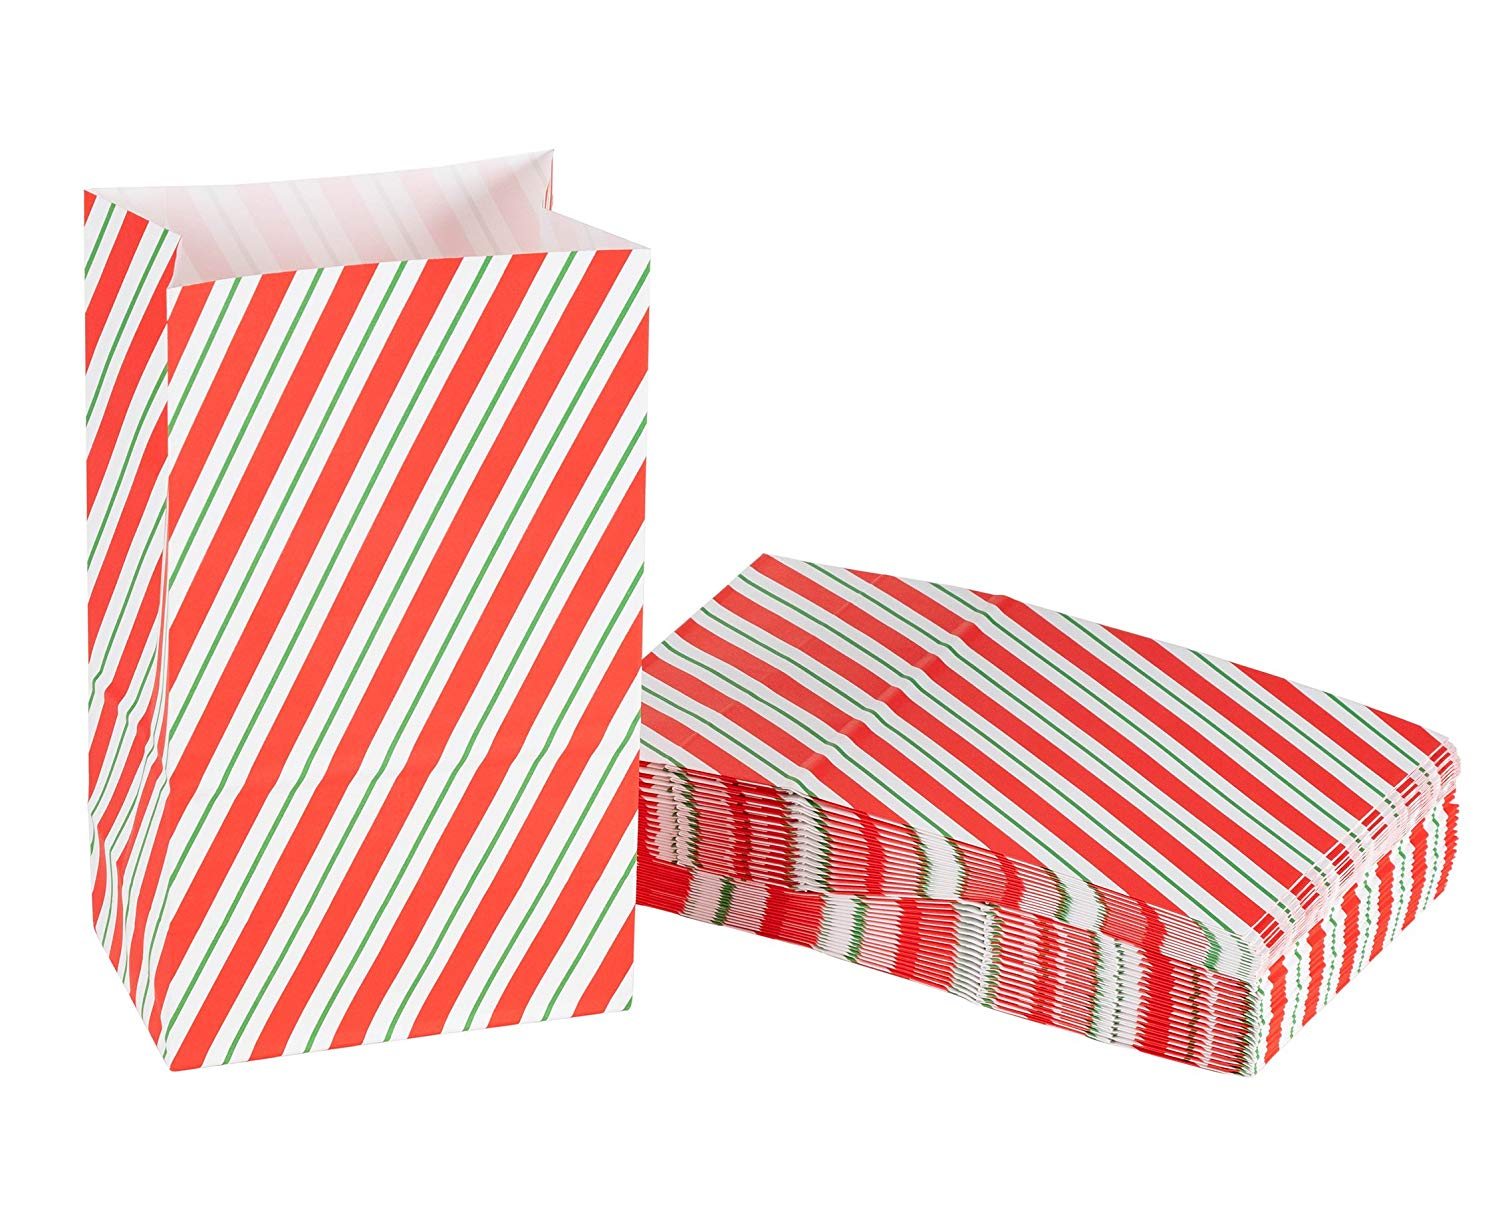 Party Treat Bags - 36-Pack Gift Bags, Christmas Party Supplies, Paper Favor Bags, Recyclable Goodie Bags for Kids, Candy Cane Design, 5.2 x 8.7 x 3.3 Inches